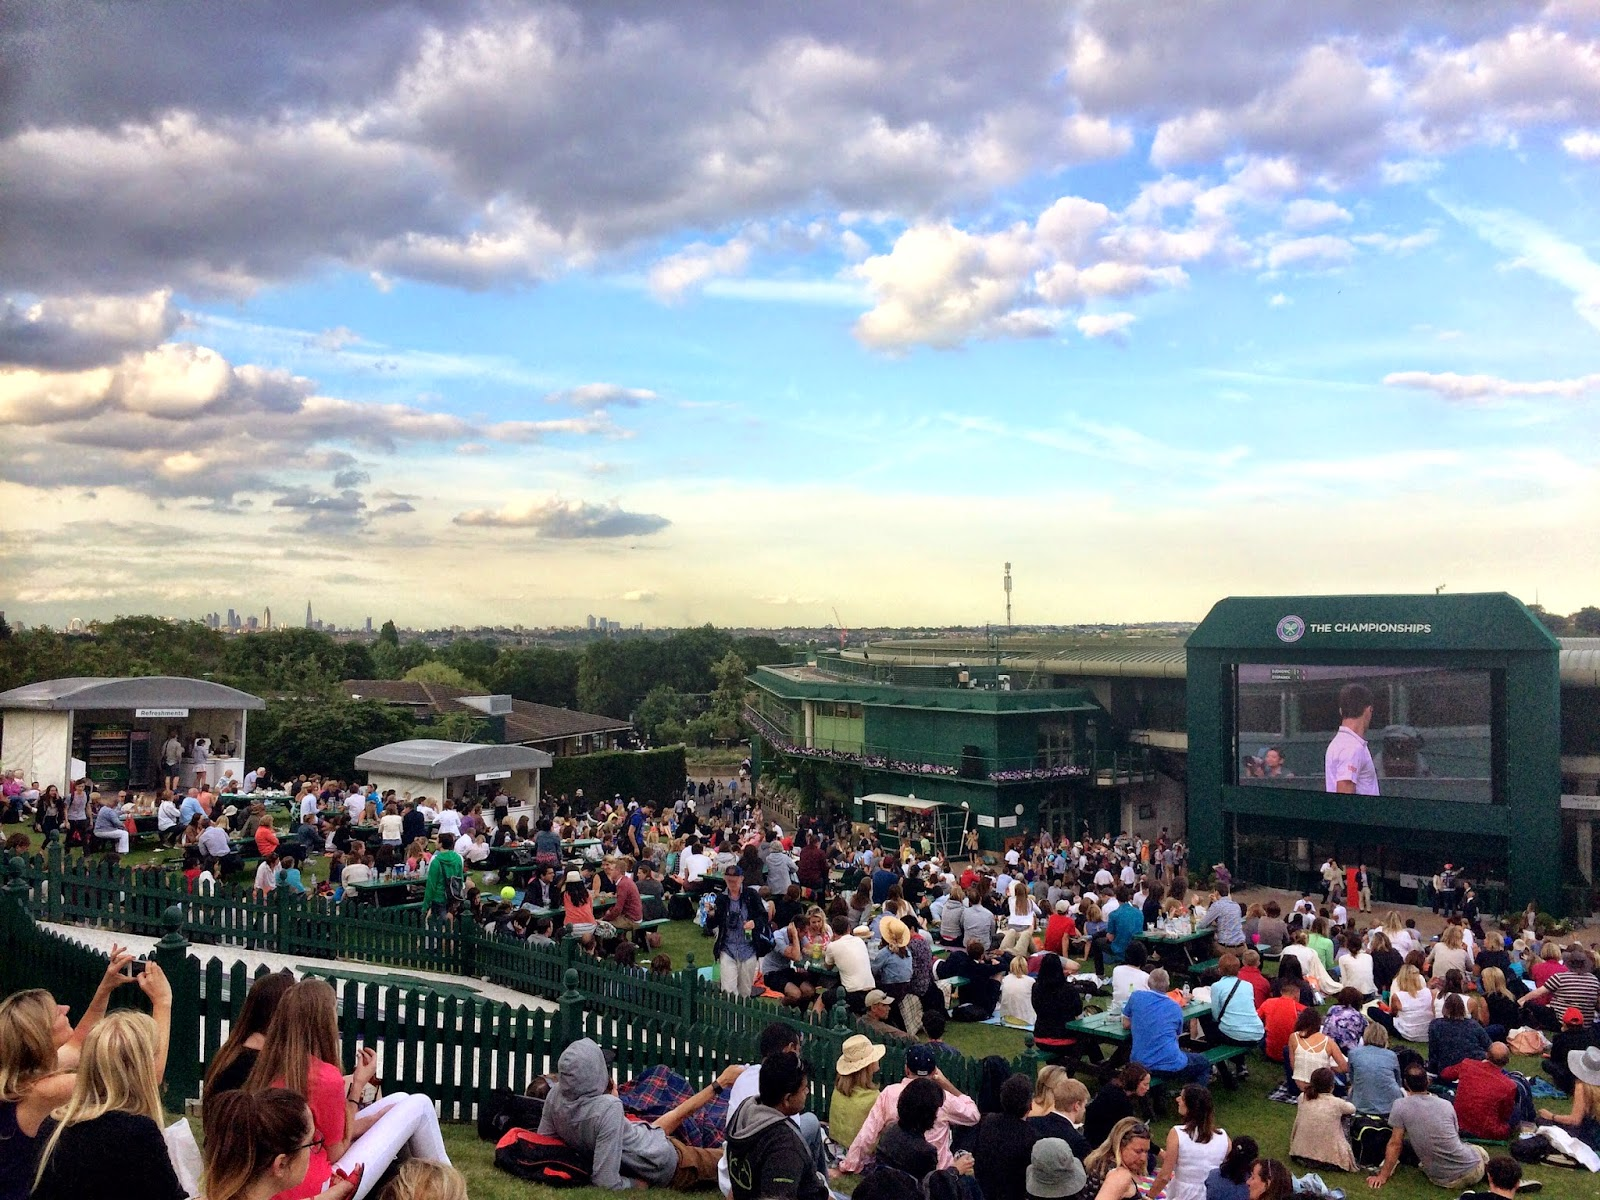 Murray Mound looking towards London - Wimbledon 2014